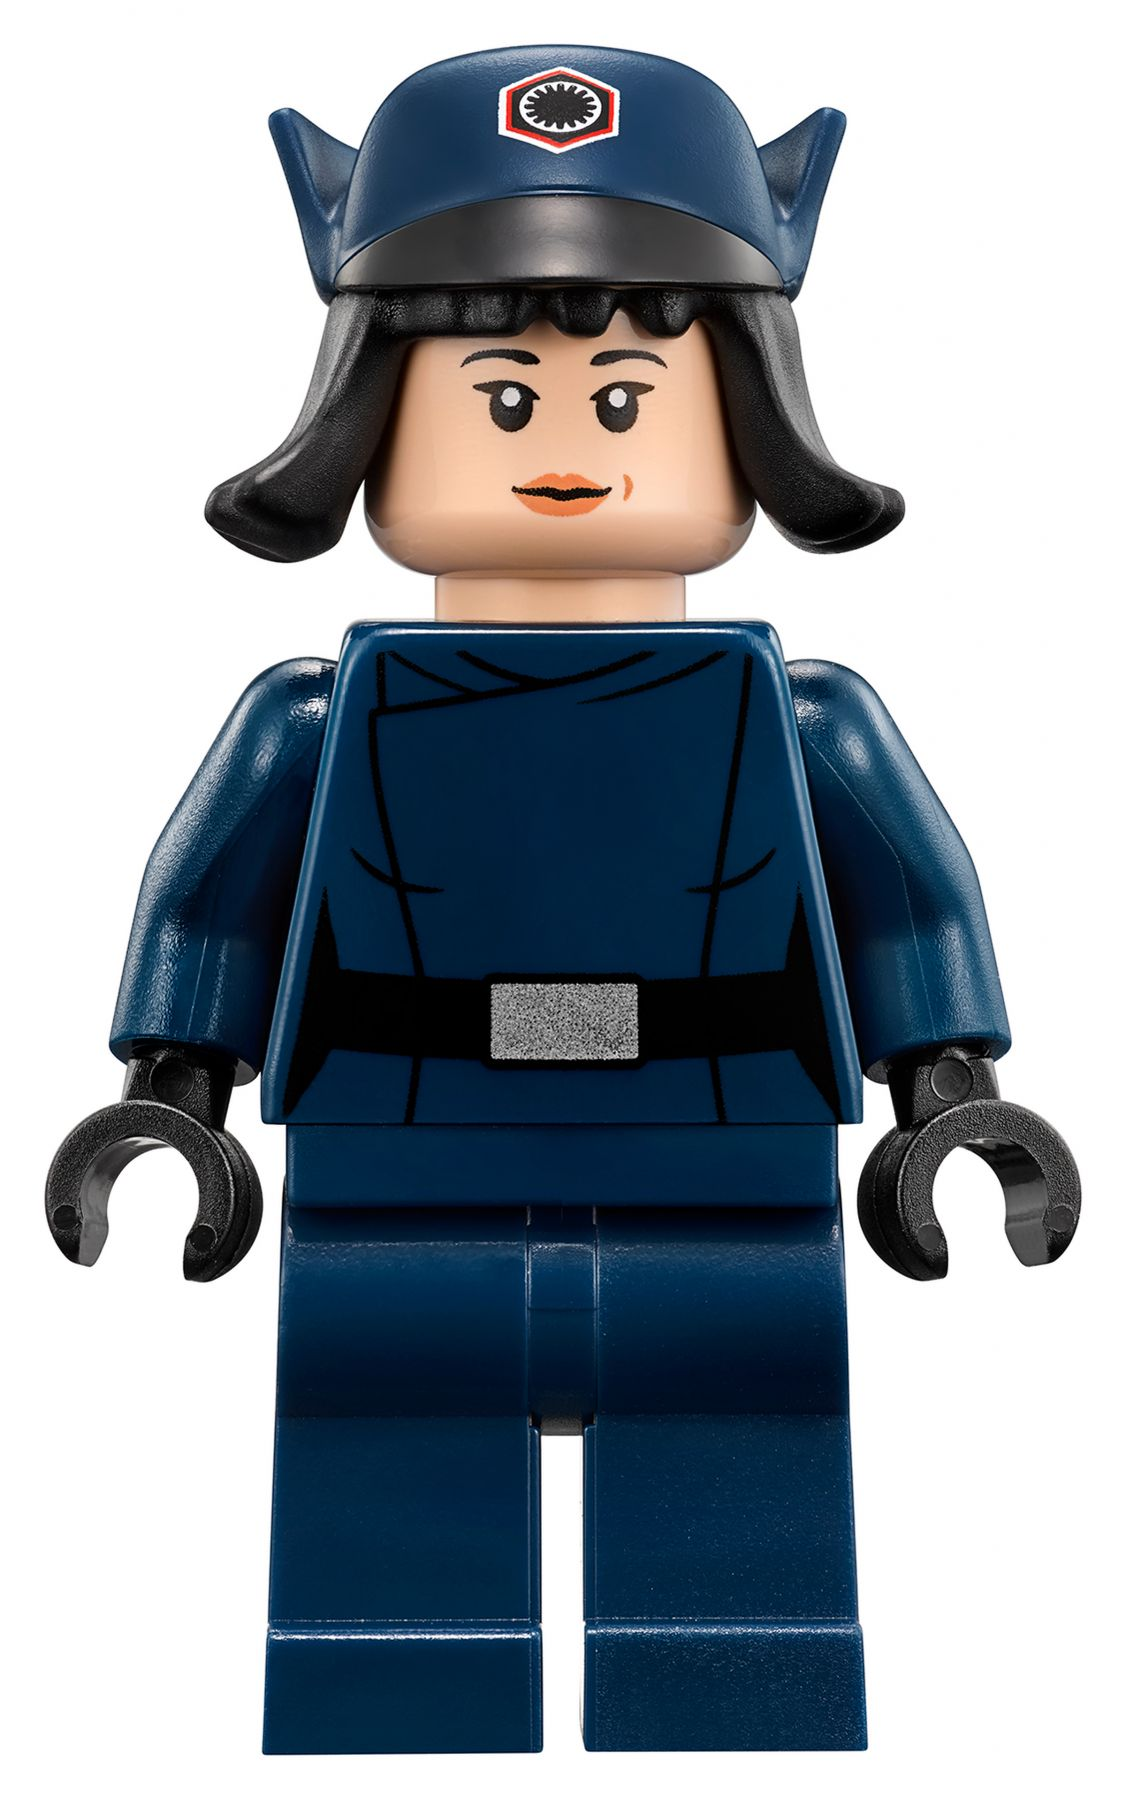 LEGO Star Wars 75201 First Order AT-ST™ LEGO_75201_alt4.jpg